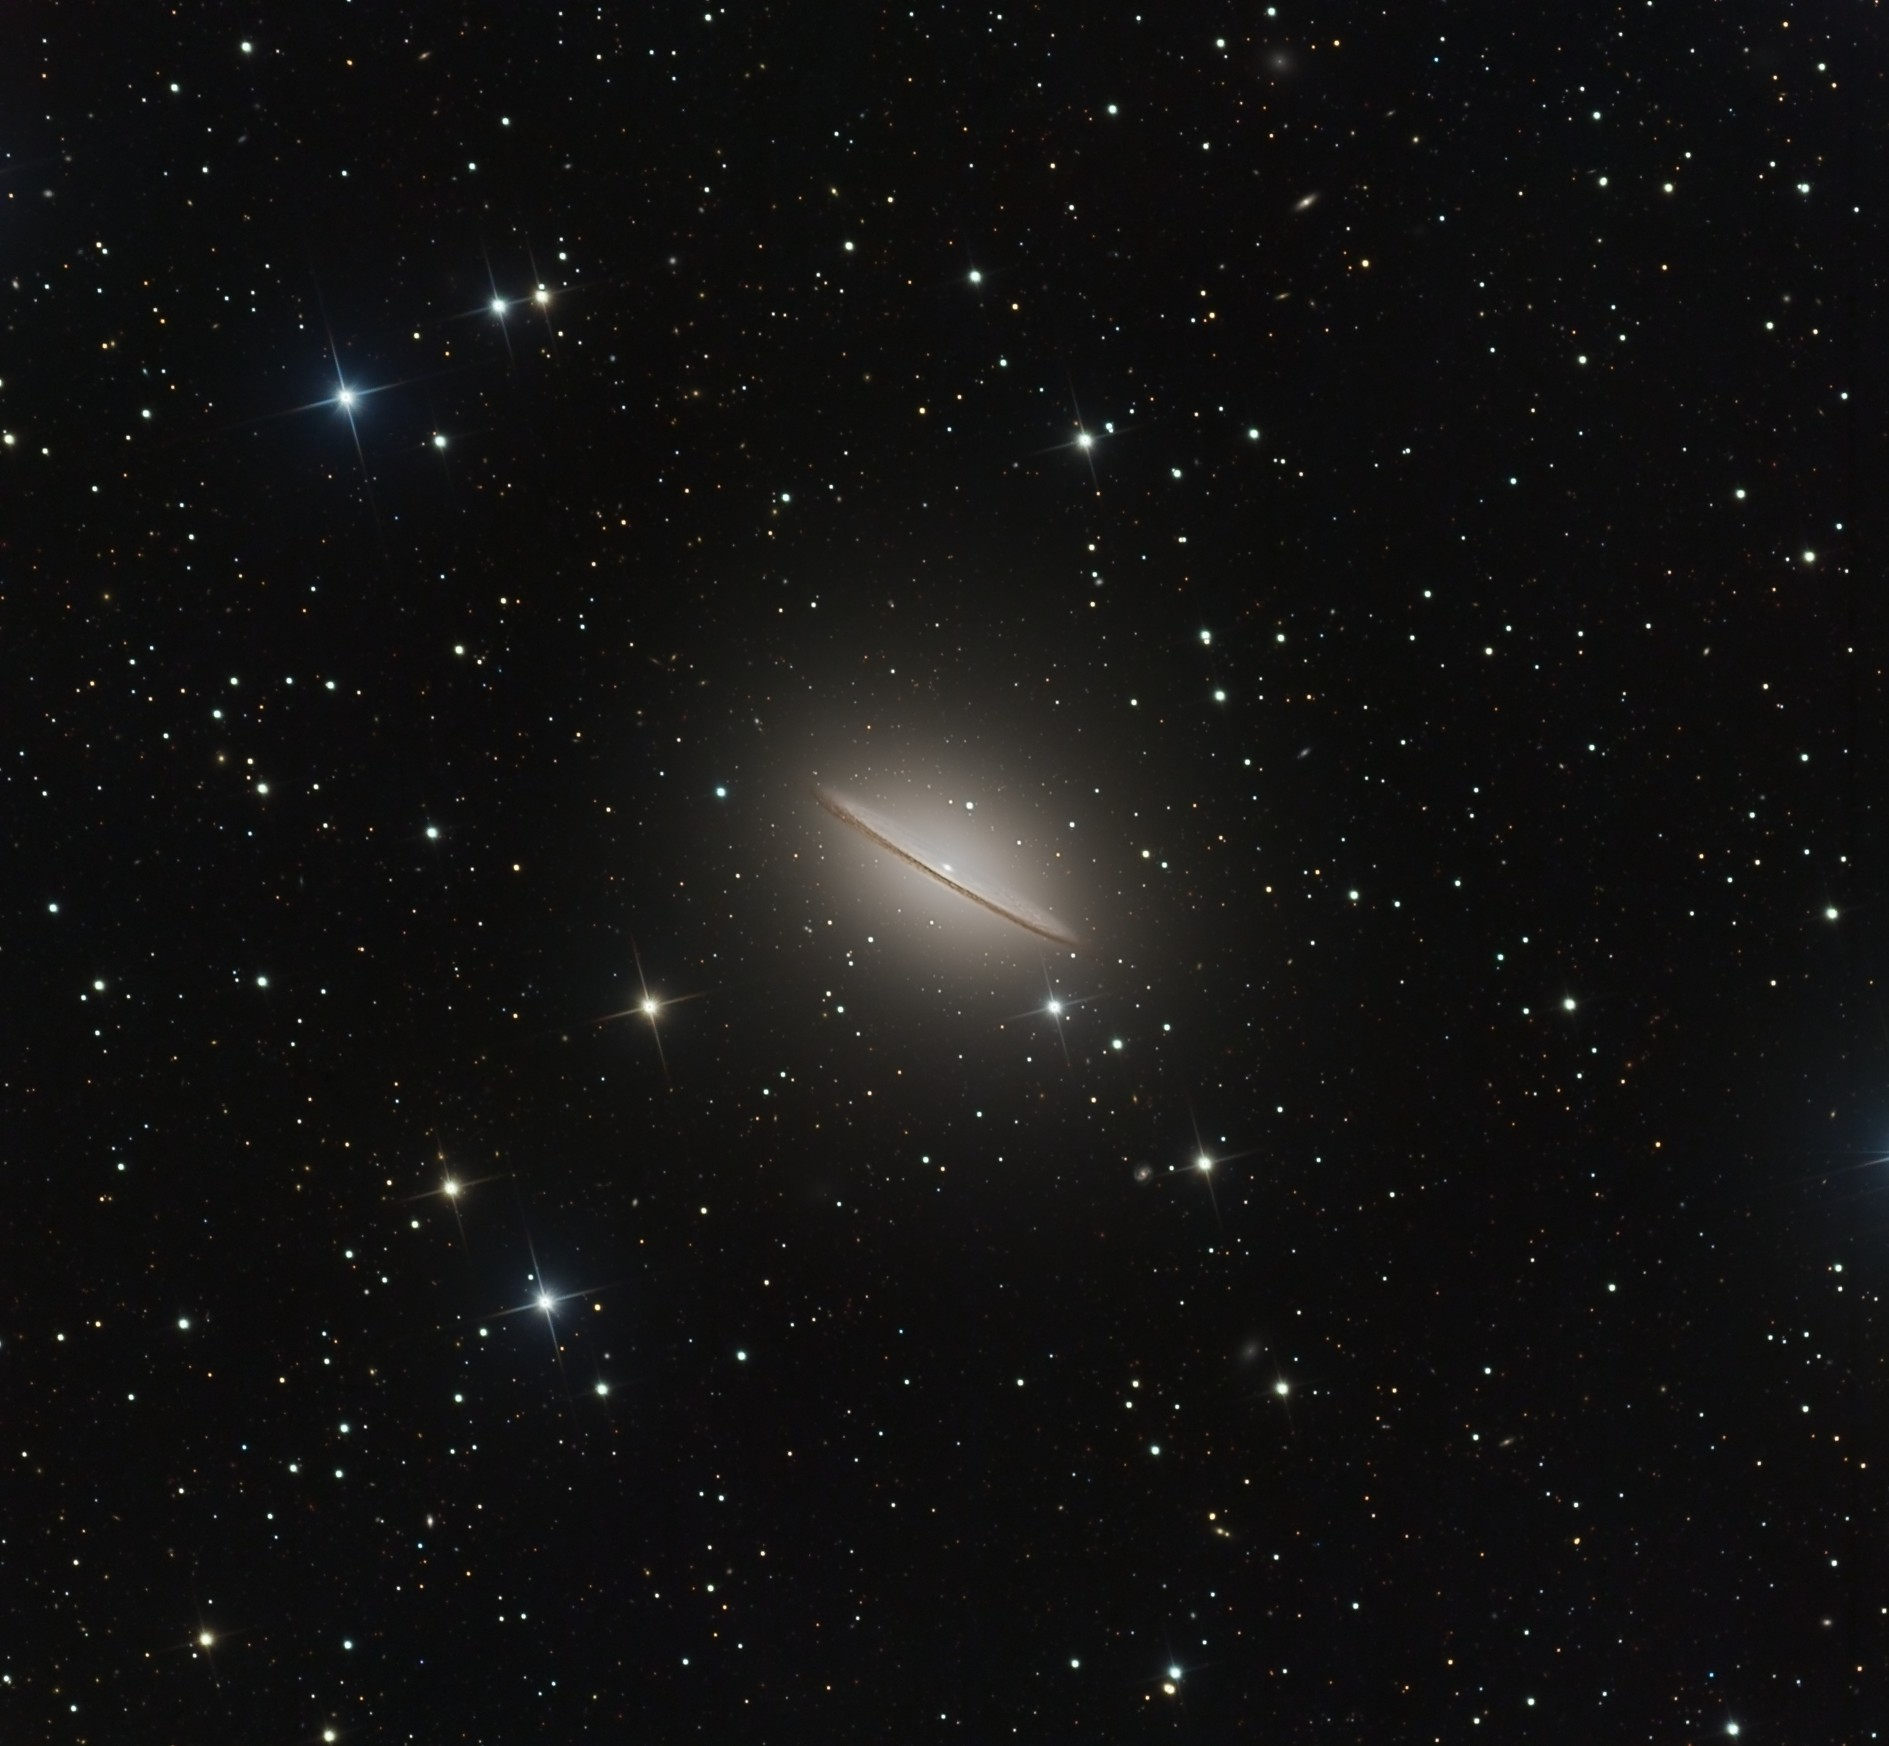 Astrophoto: Awesome Views of a Sombrero in Space